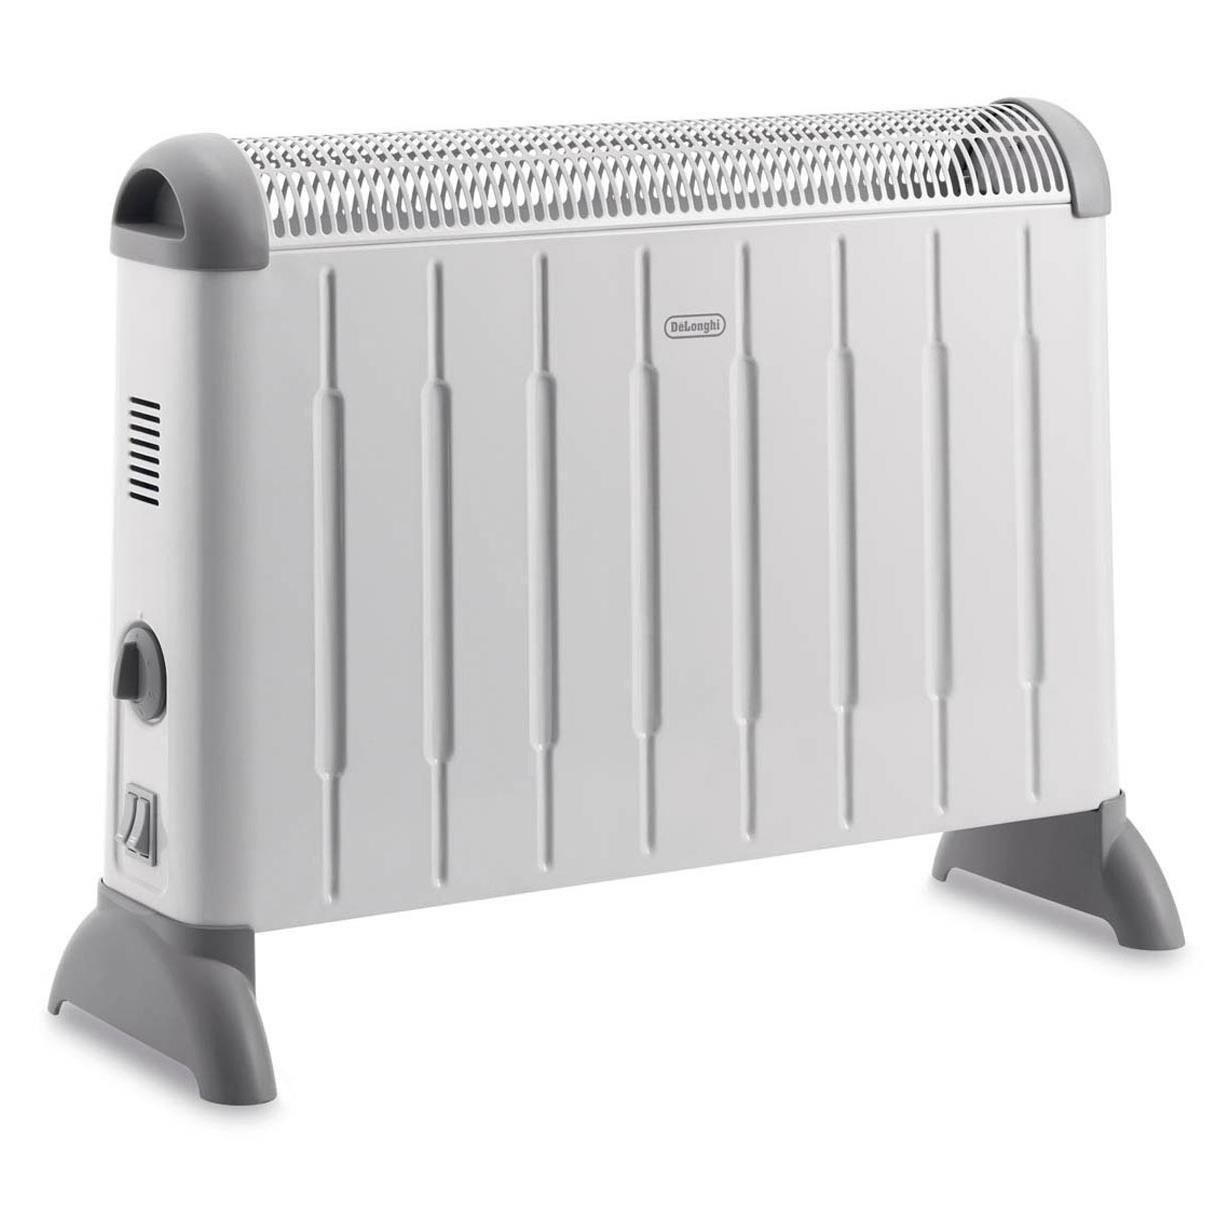 DeLonghi 2000W Electric Convection Heater